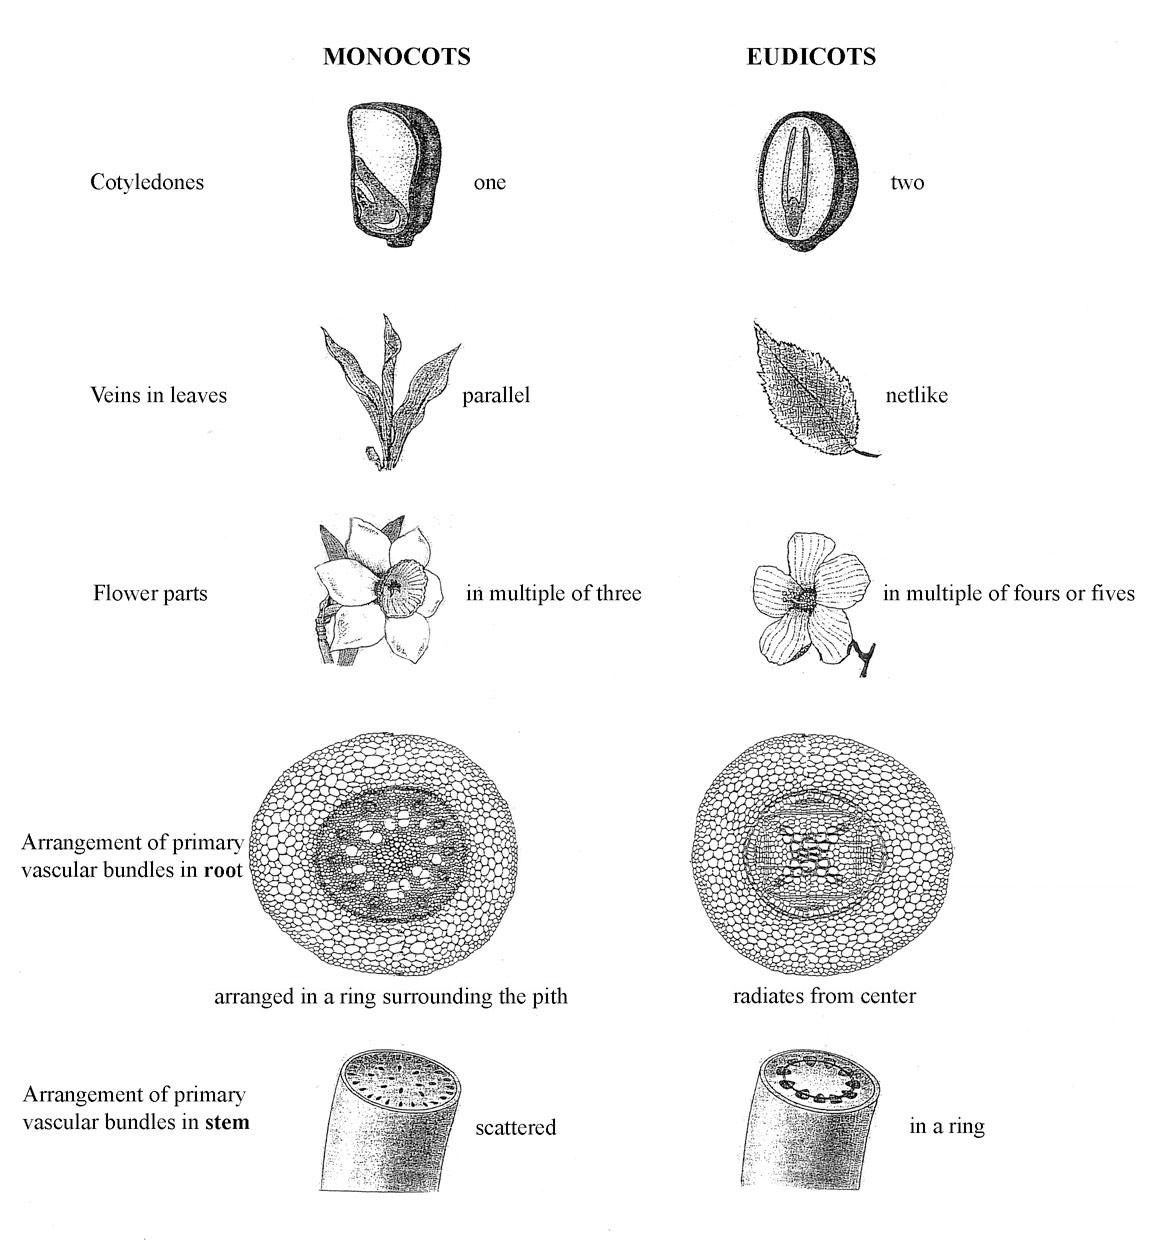 dicot leaf labeled diagram weider pro 4950 cable bio lab midterm 4 cont and 5 flashcards by proprofs